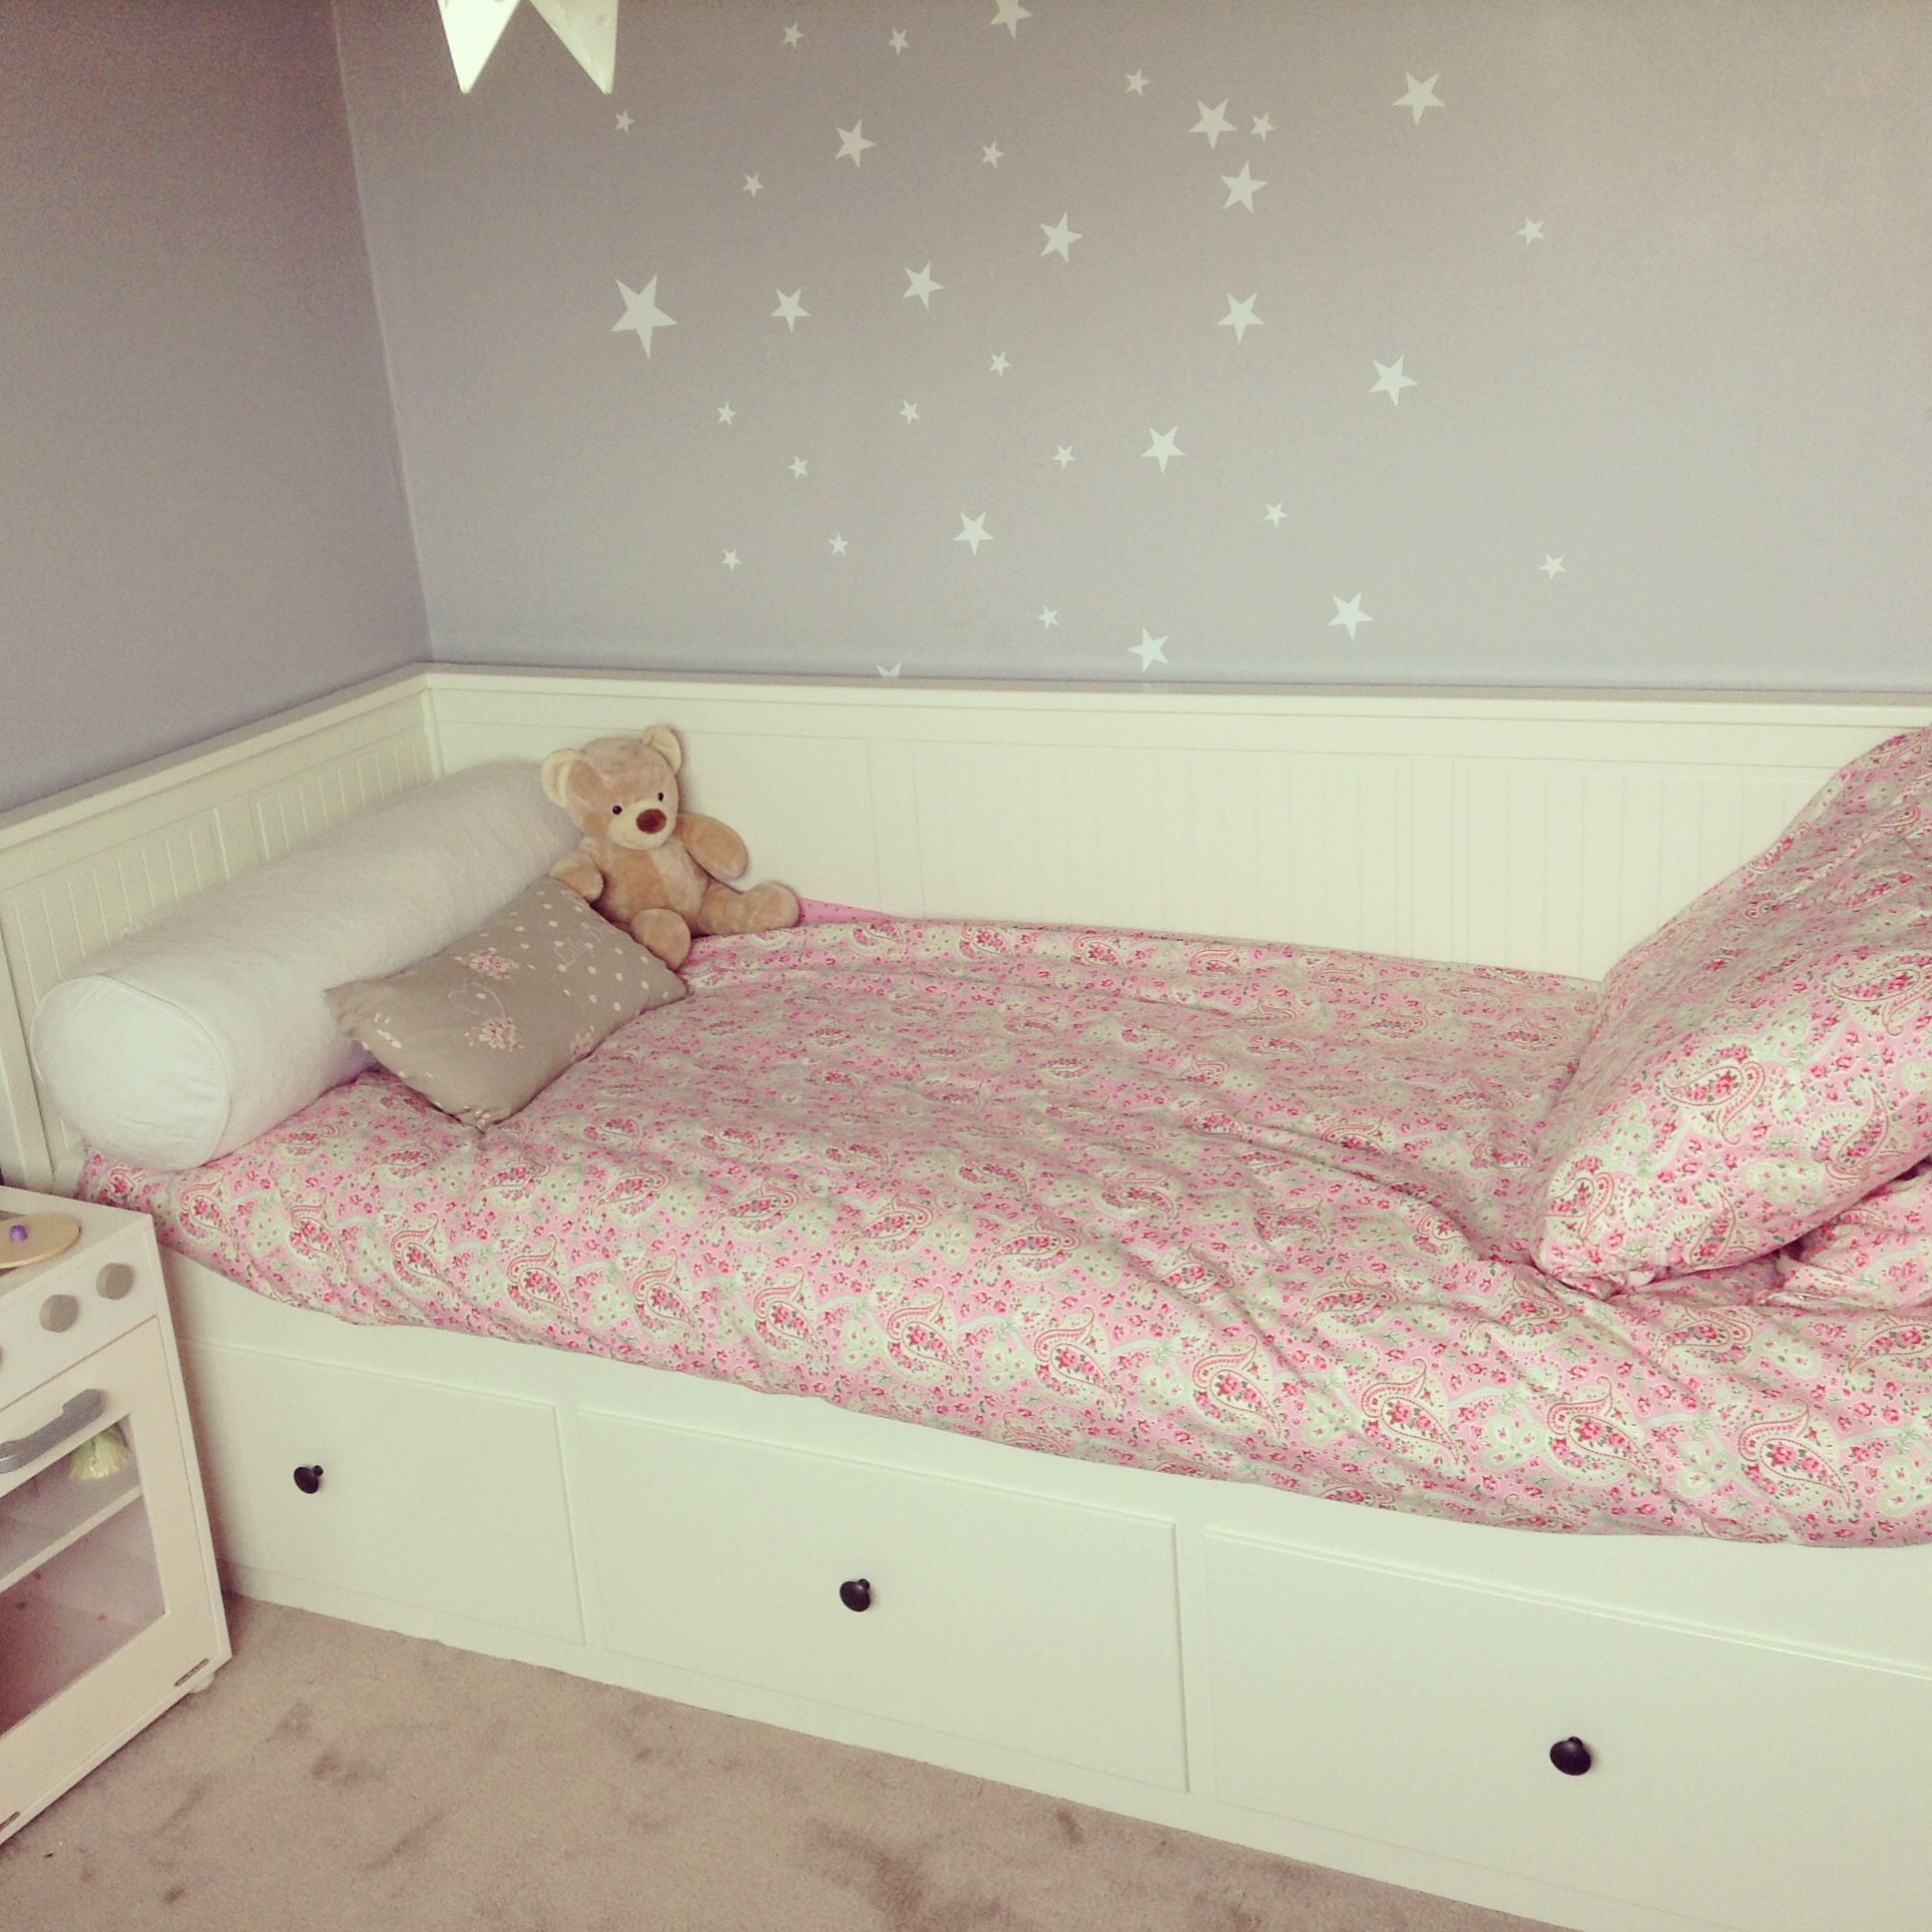 Ikea day beds hemnes home design ideas - Little Girl S Take On Ikea Hemnes Daybed